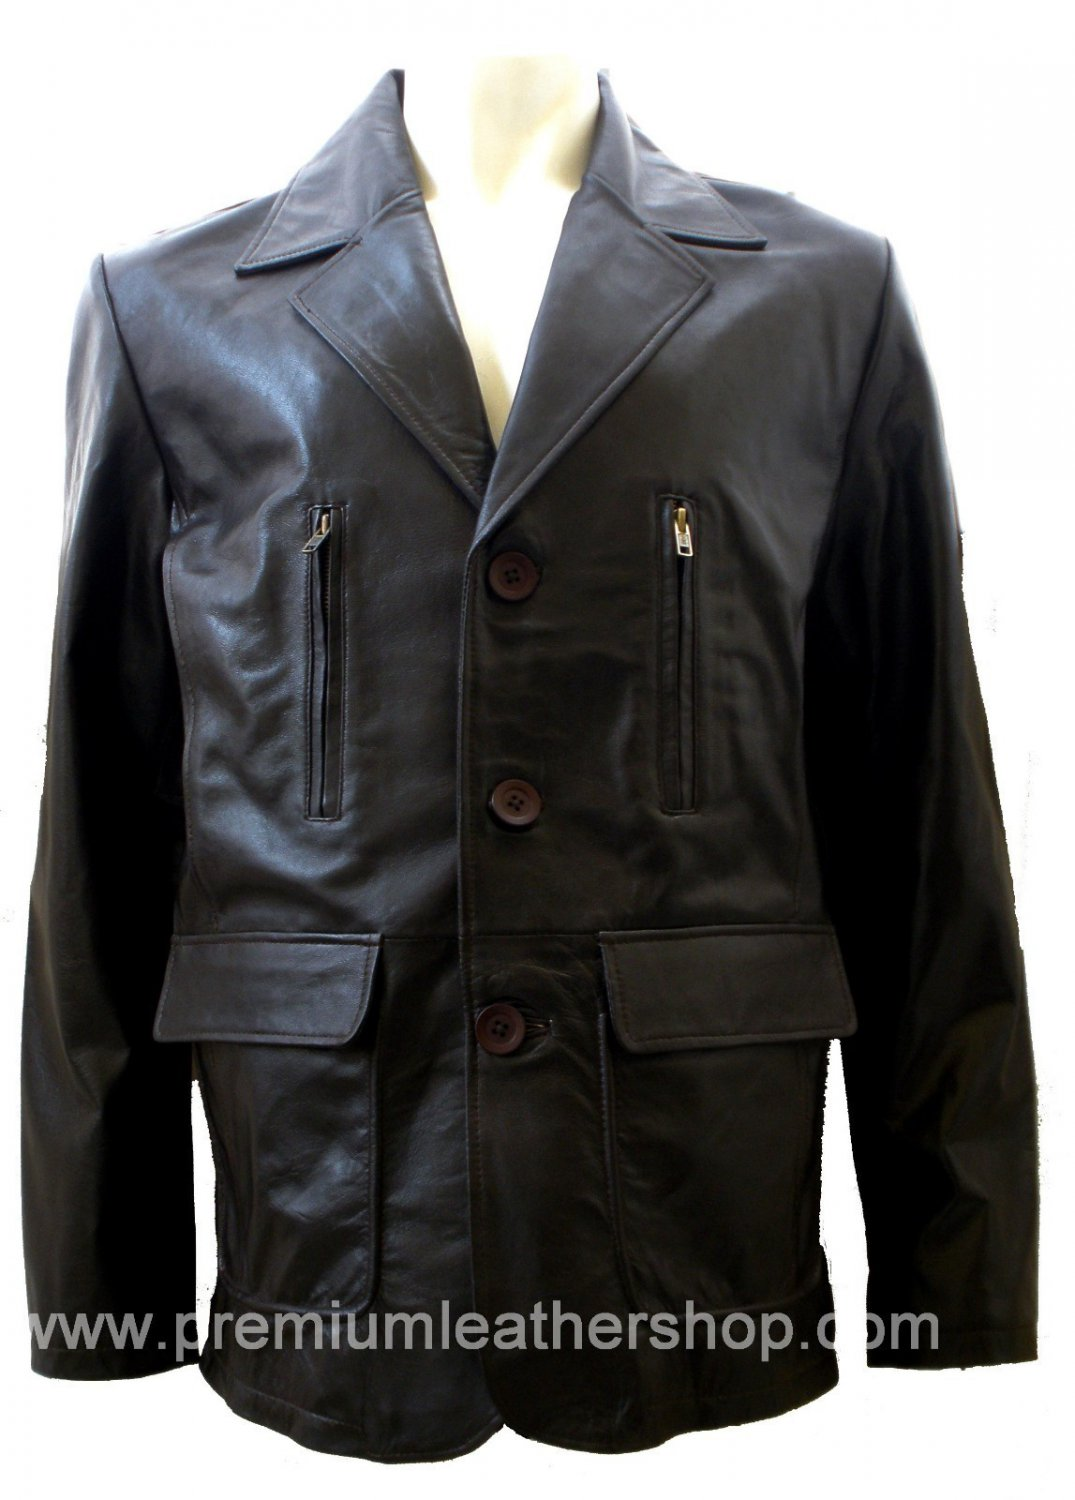 NWT Men's 3 Button Leather Blazer Style M26 Size 2XL $120 + shipping or your best offer